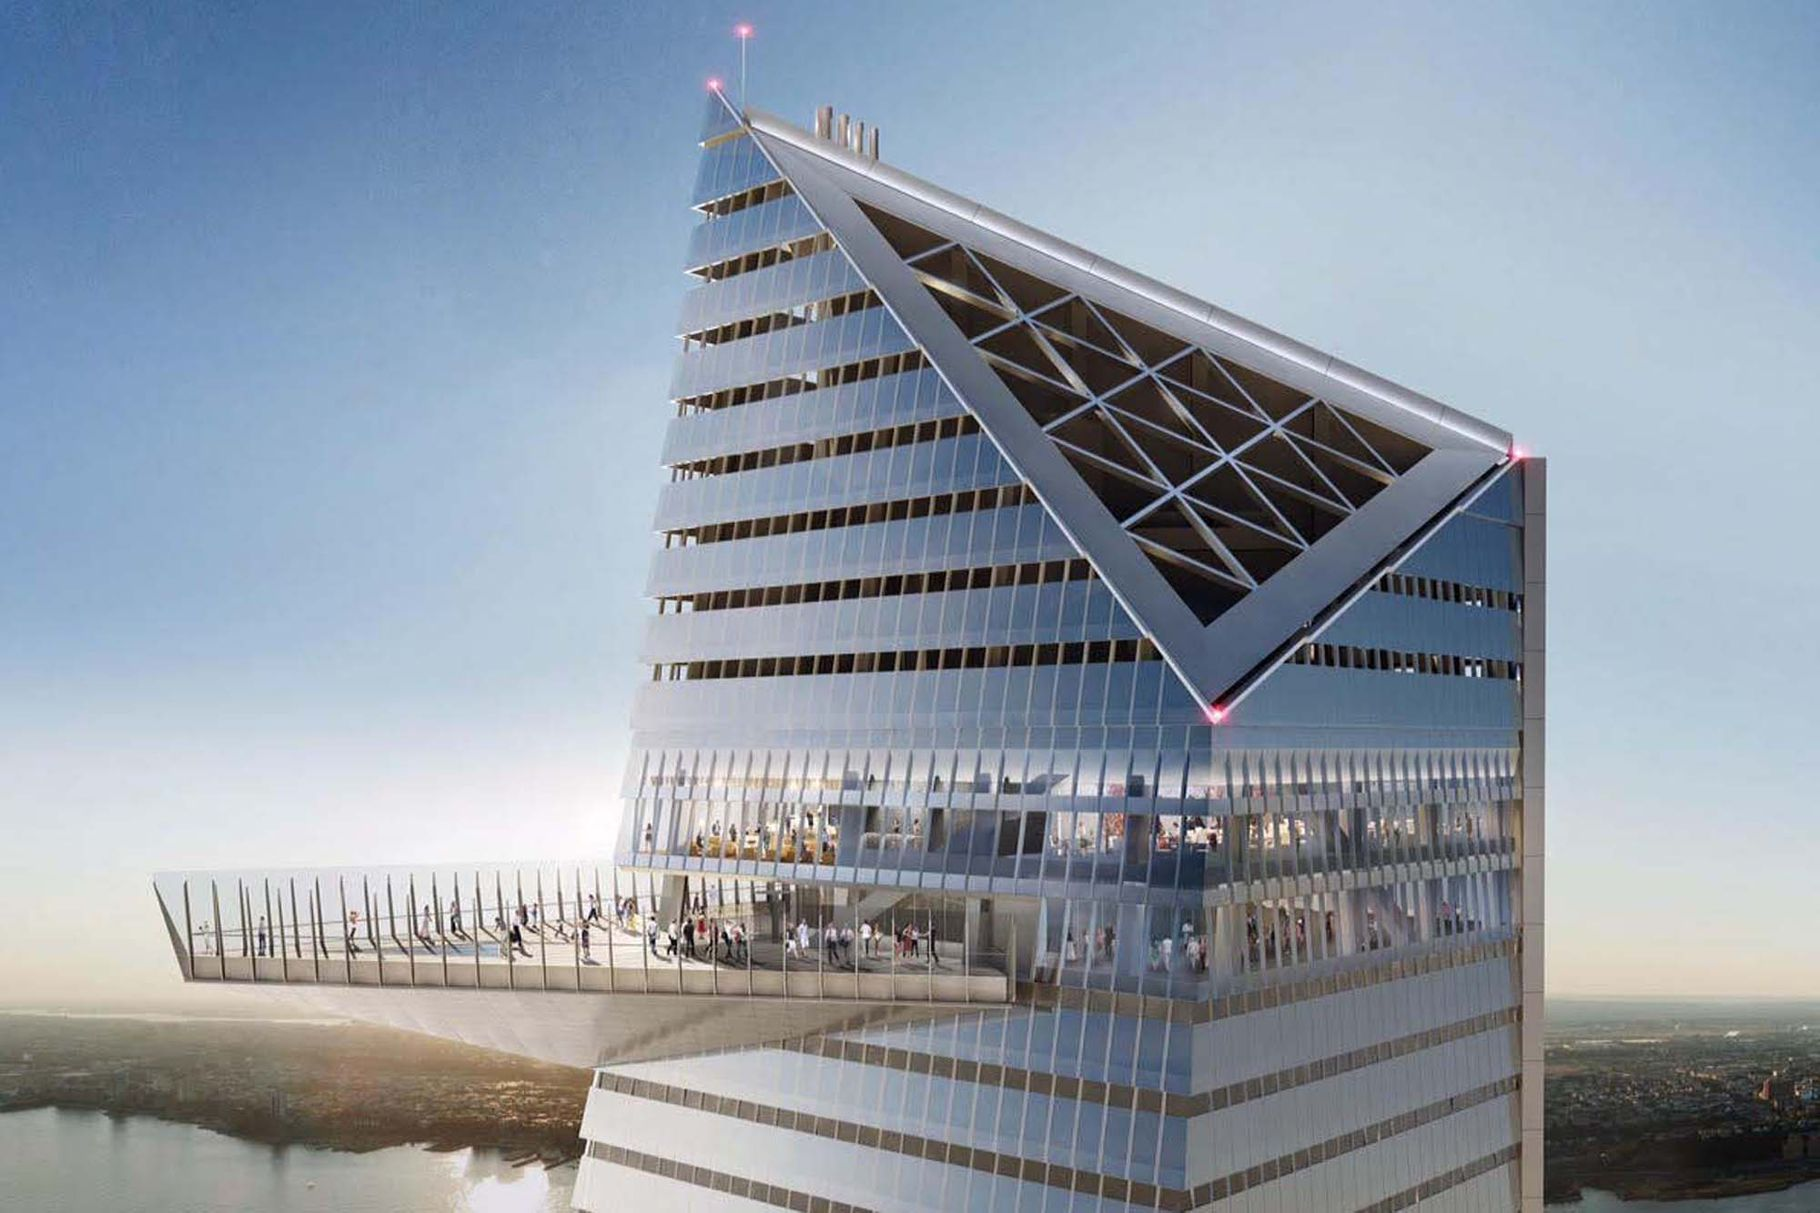 Related Companies Announces The London-Based Hospitality Firm Rhubarb To Operate Rooftop Public Space In 30 Hudson Yards